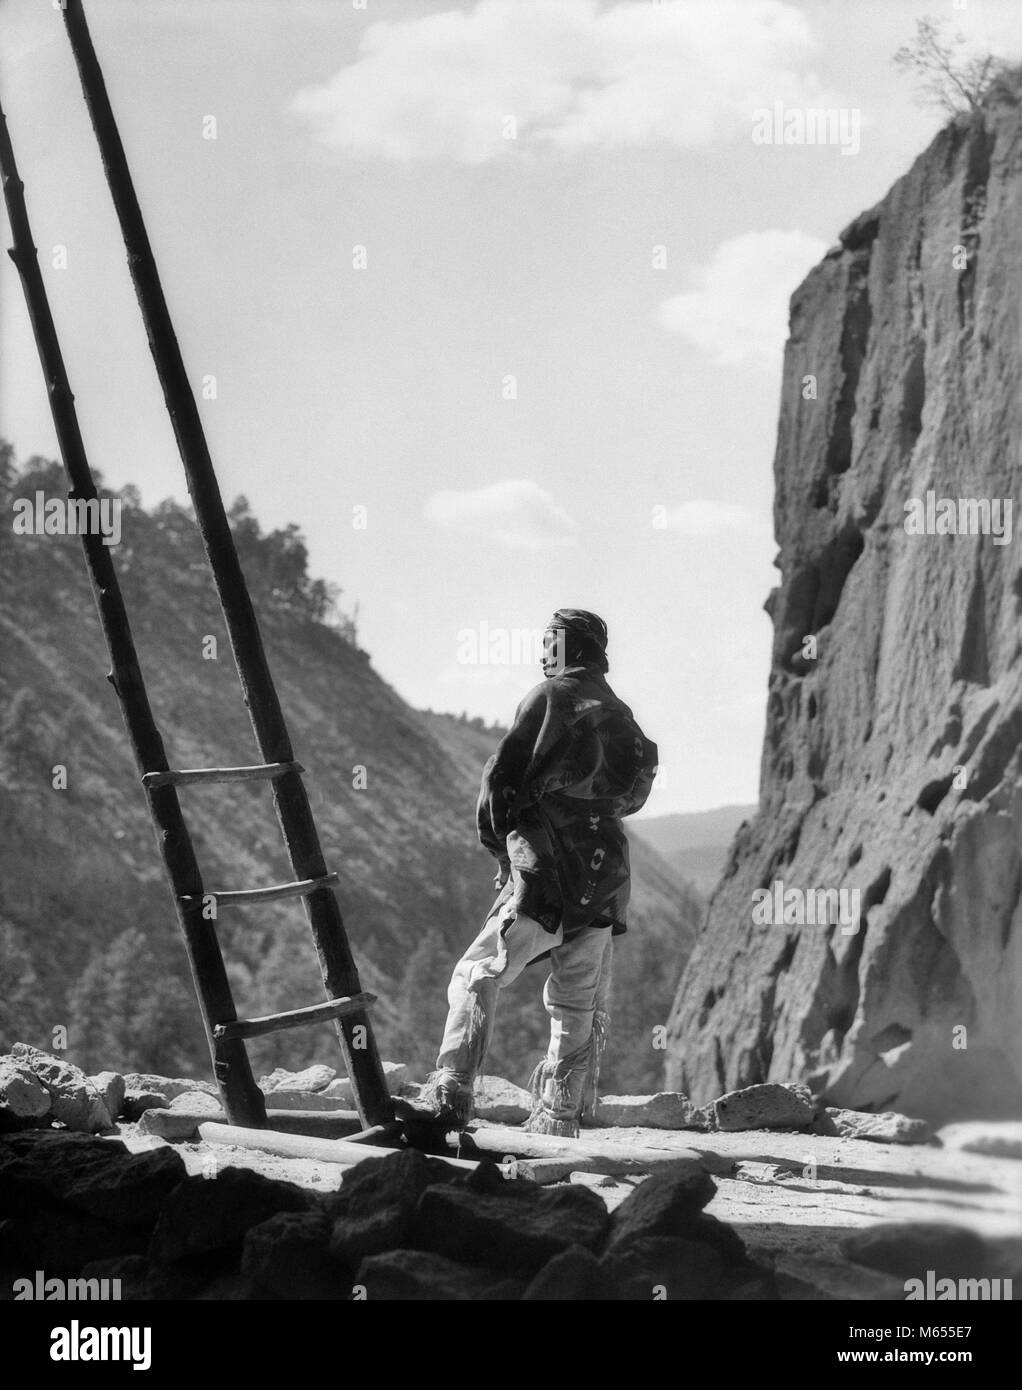 1930s NATIVE AMERICAN INDIAN MAN BY KIVA LADDER FRIJOLES CANYON CEREMONIAL KIVA BANDELIER NATIONAL MONUMENT NEW - Stock Image